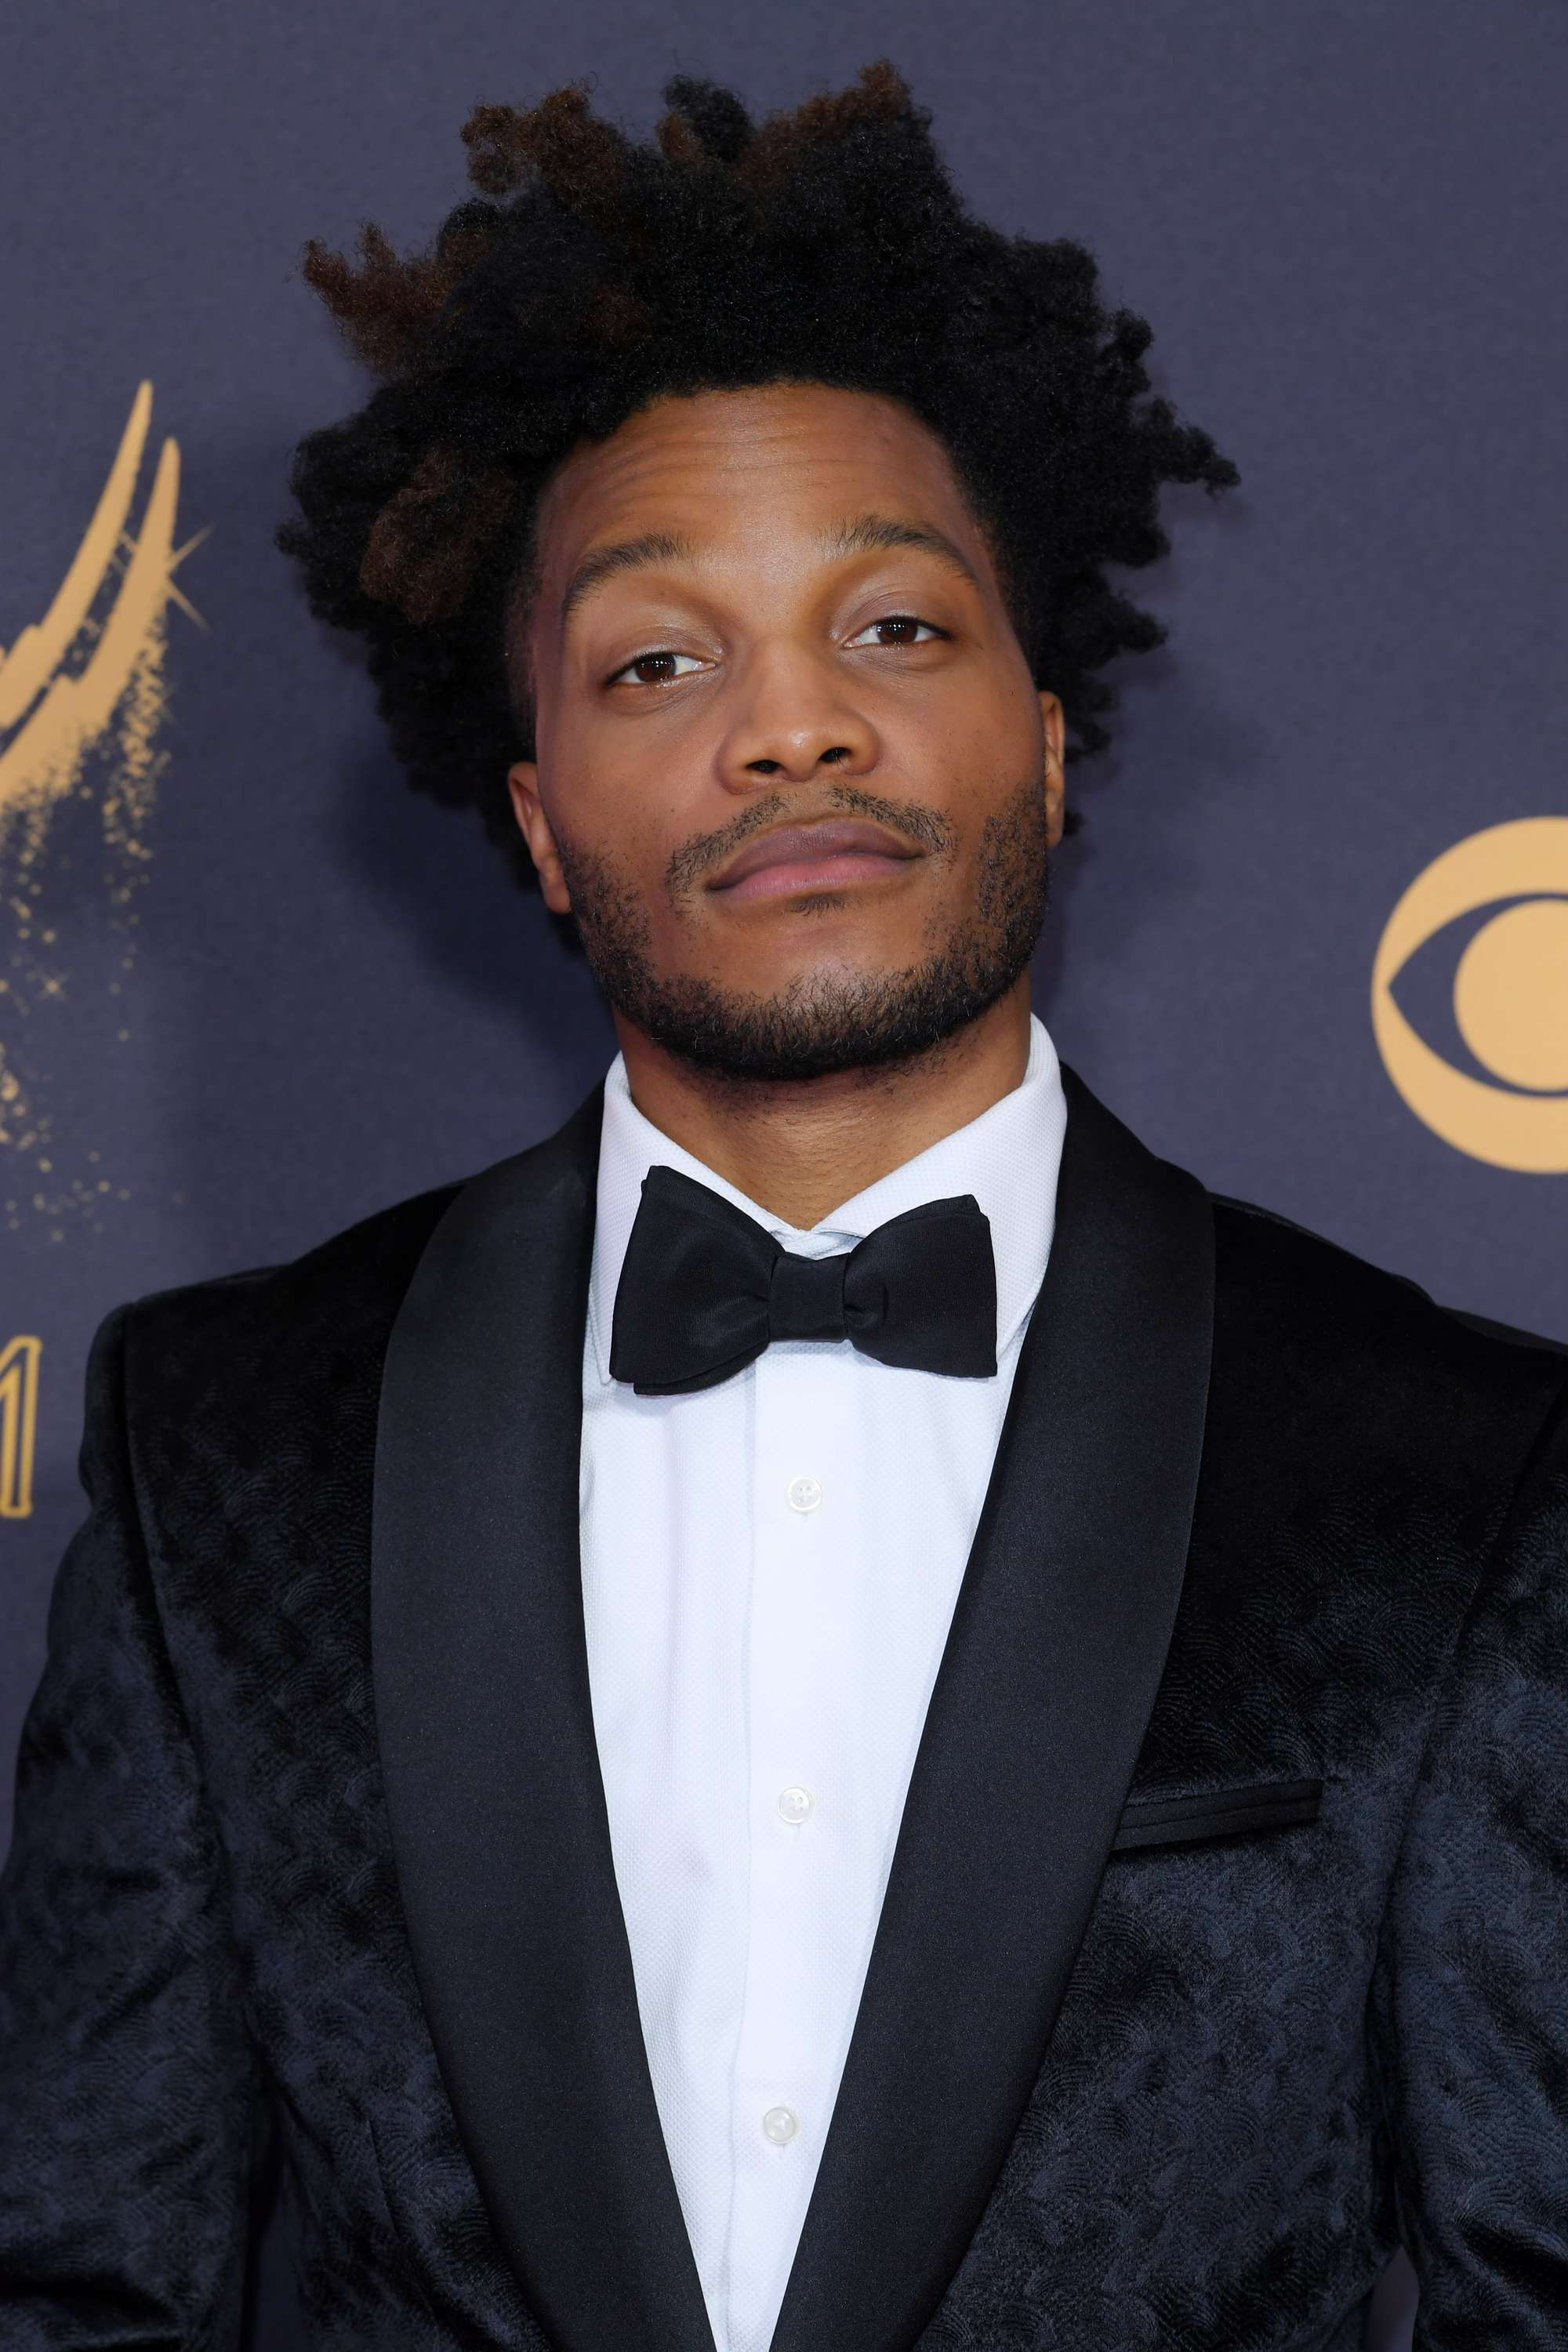 Emmy Awards 2017: Jermaine Fowler with mid length afro hair